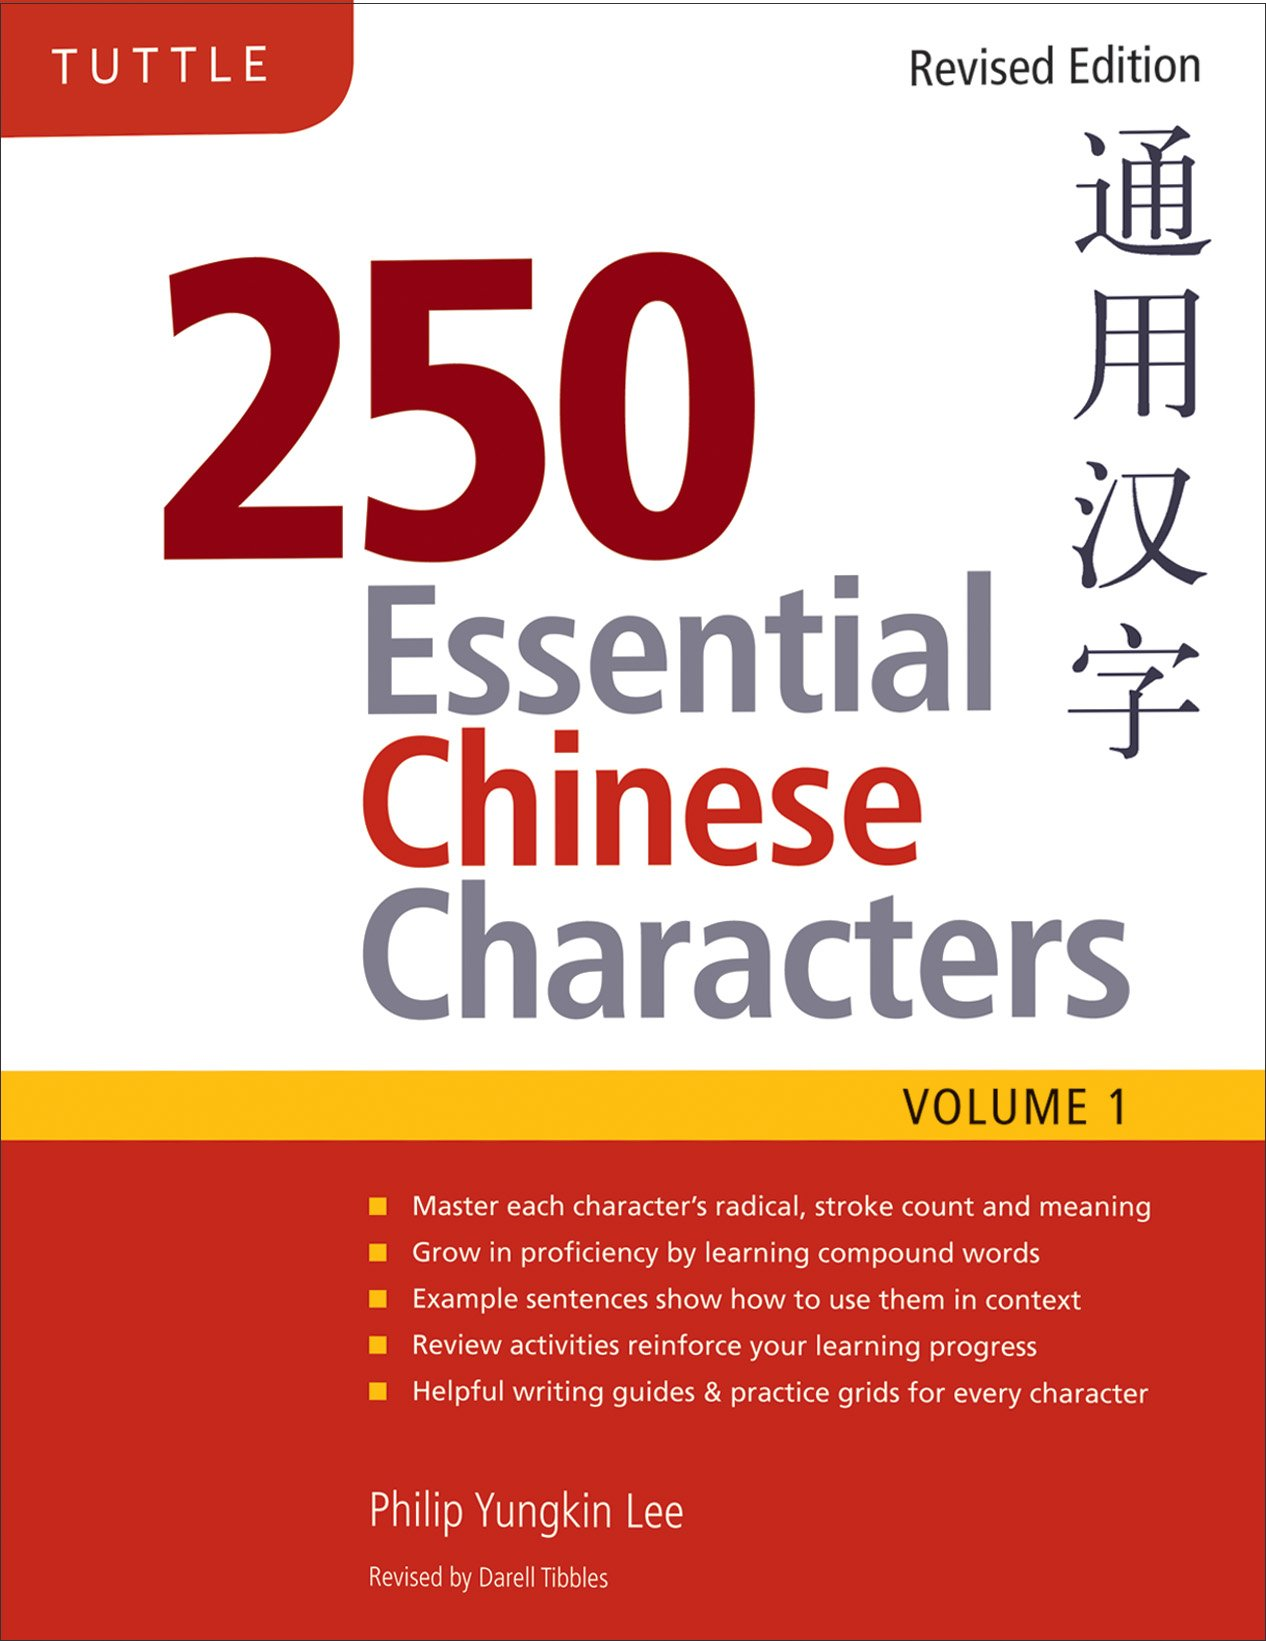 250 Essential Chinese Characters Volume 1: Revised Edition (HSK Level 1) by imusti